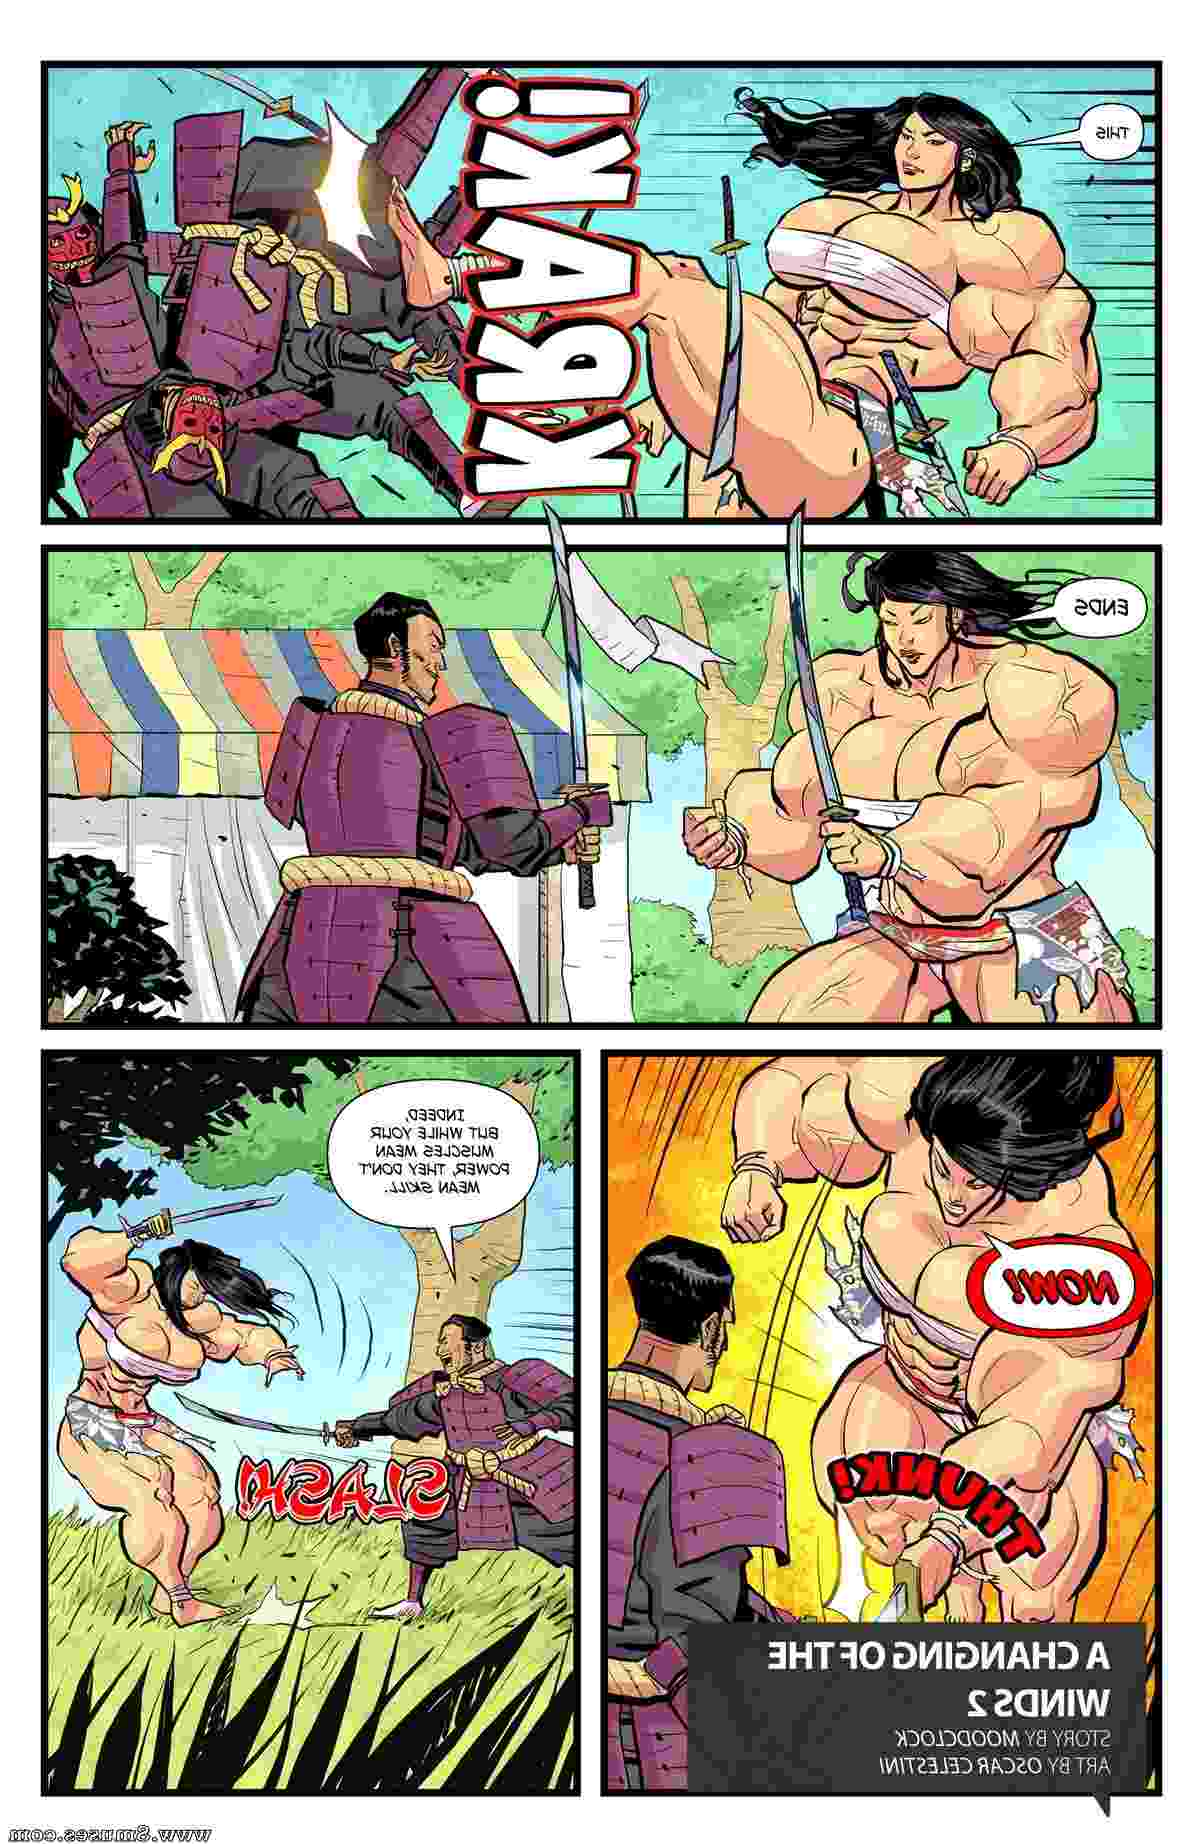 MuscleFan-Comics/Leveling-The-Field Leveling_The_Field__8muses_-_Sex_and_Porn_Comics_21.jpg